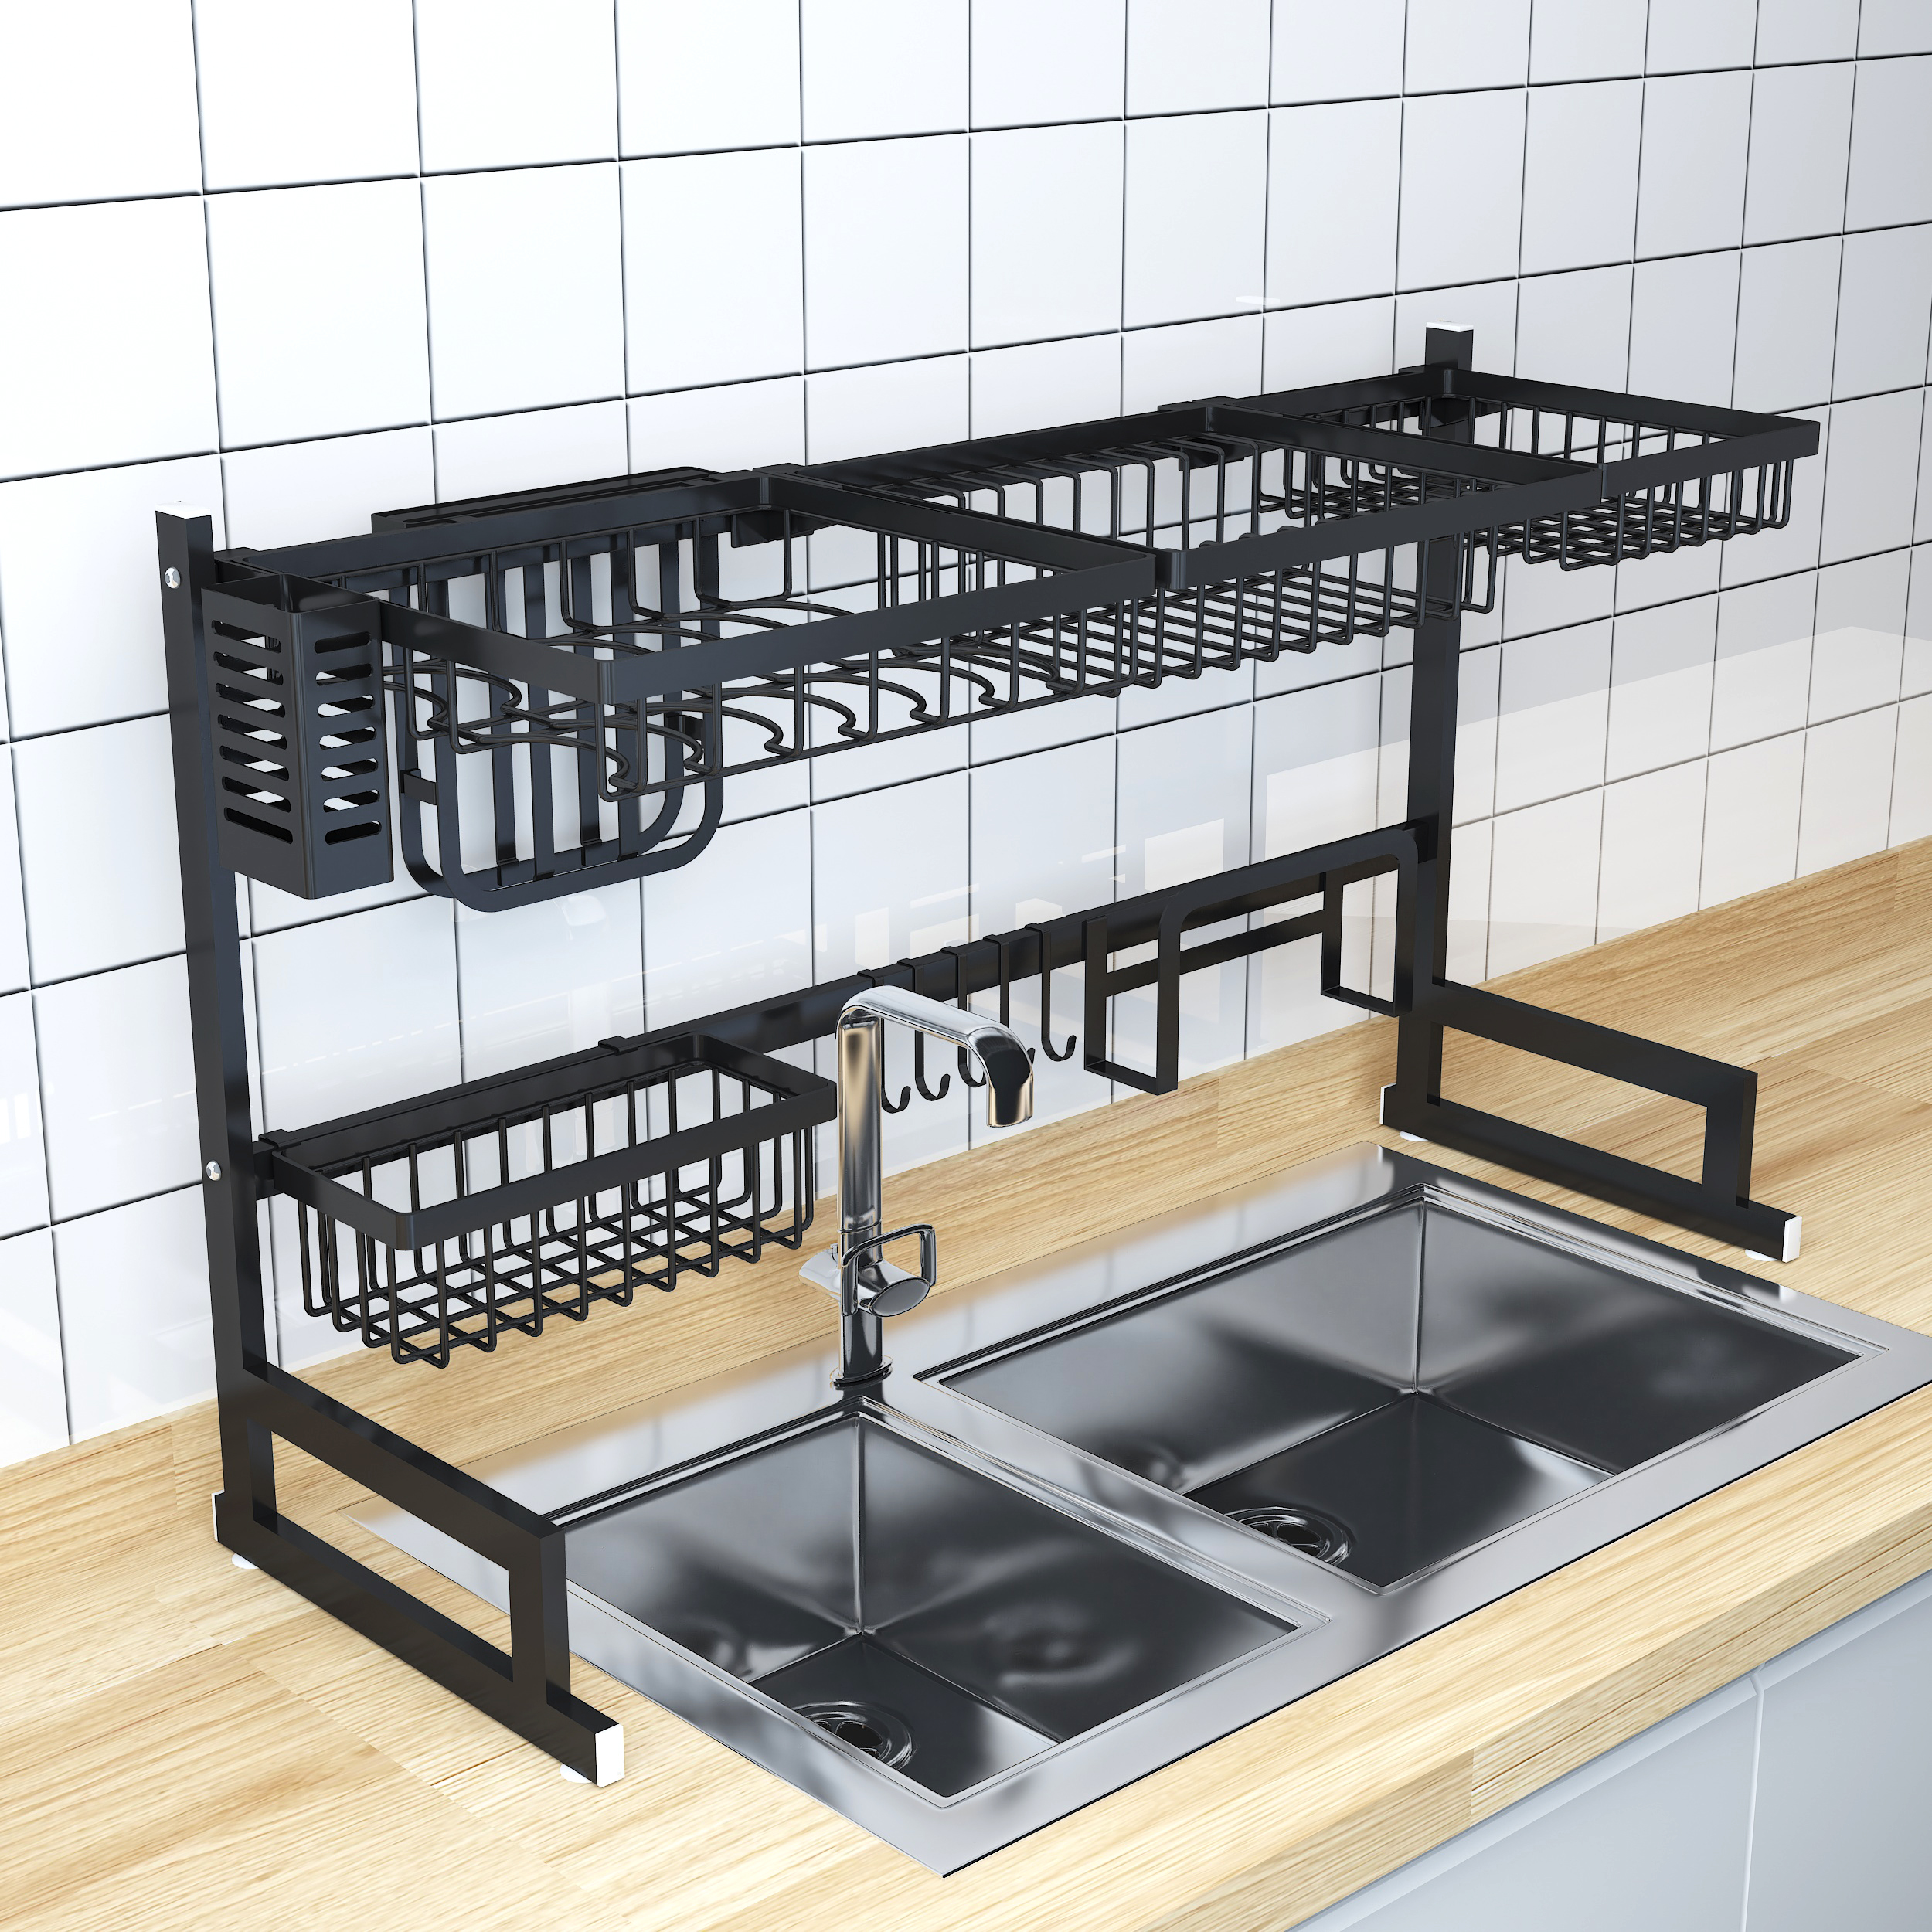 Stainless Steel Over Sink with Black Kitchen Organizer Dish Drainer Rack фото